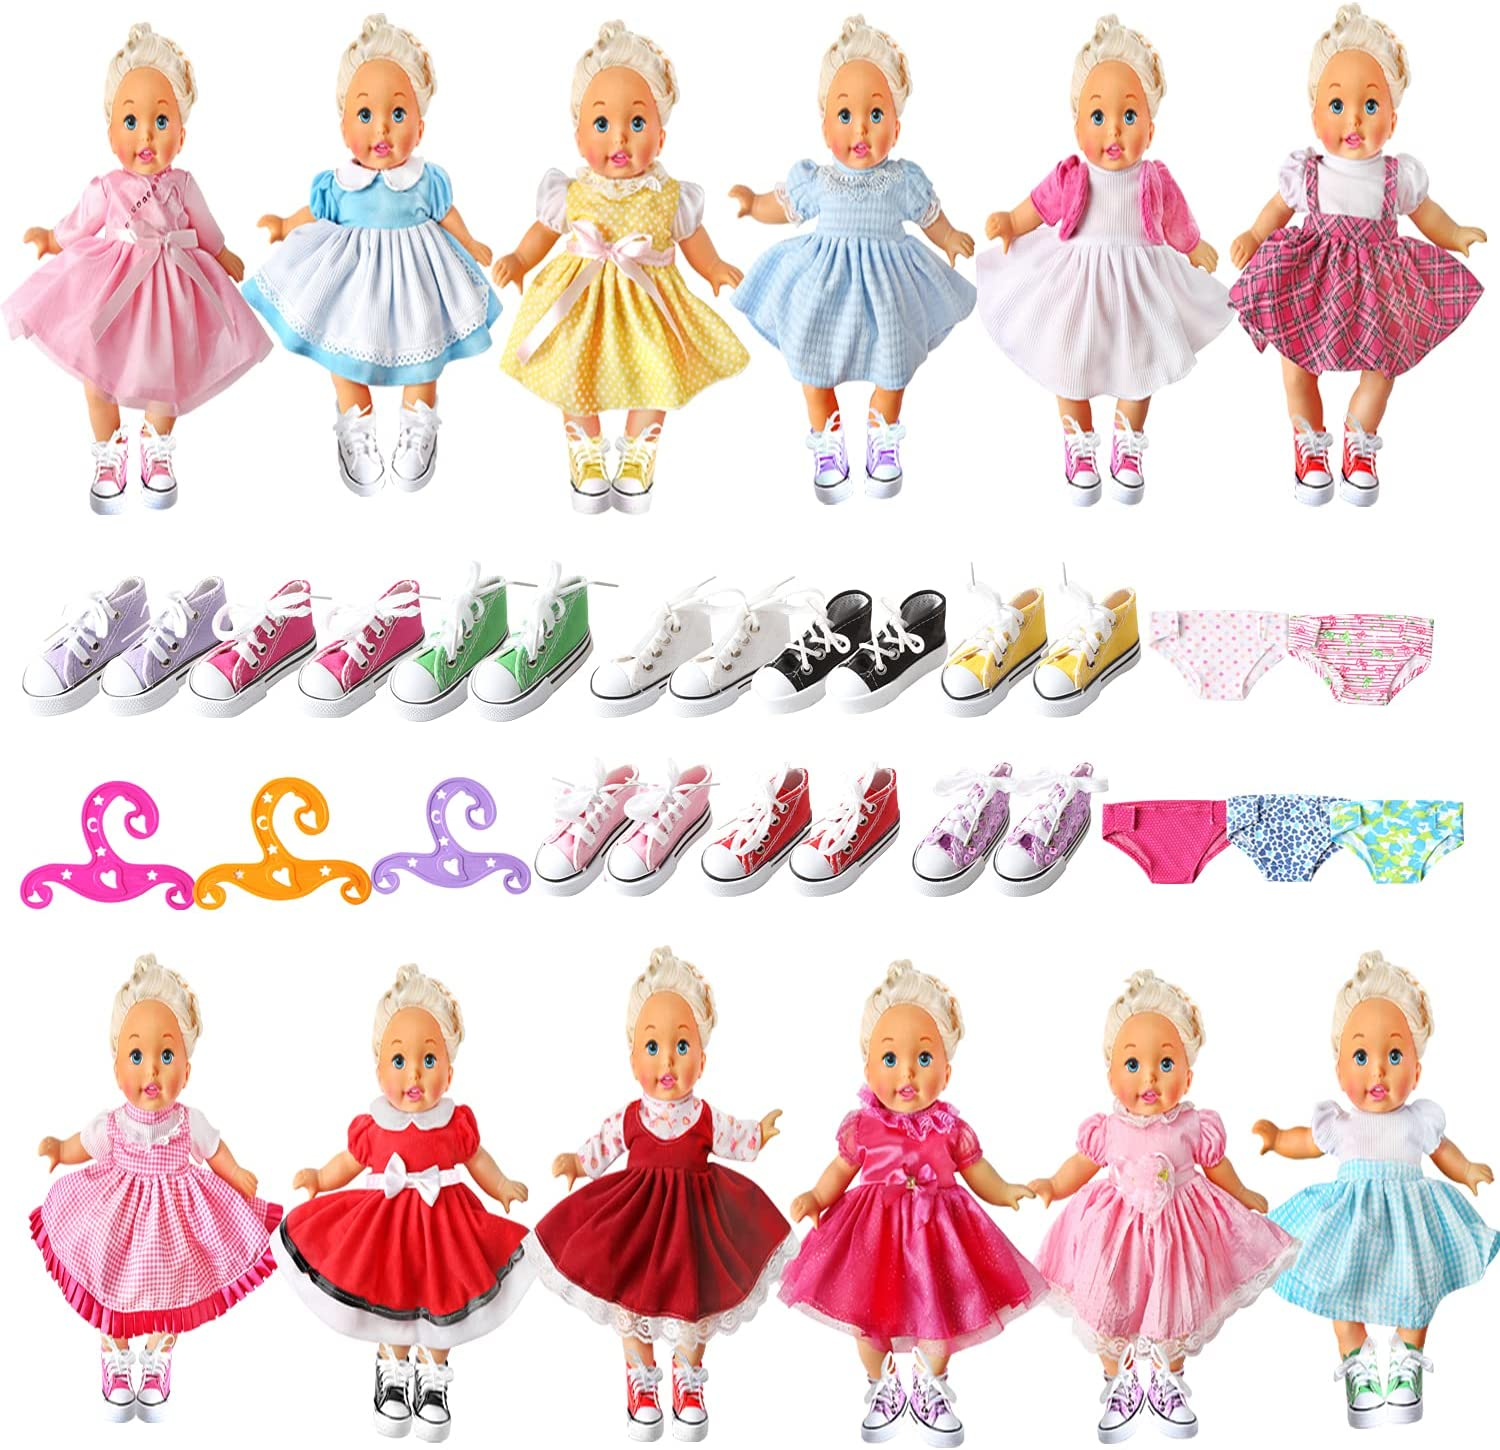 Alive Baby Doll Clothes and Accessories Girl Dres 19 Sets - Financial Now free shipping sales sale